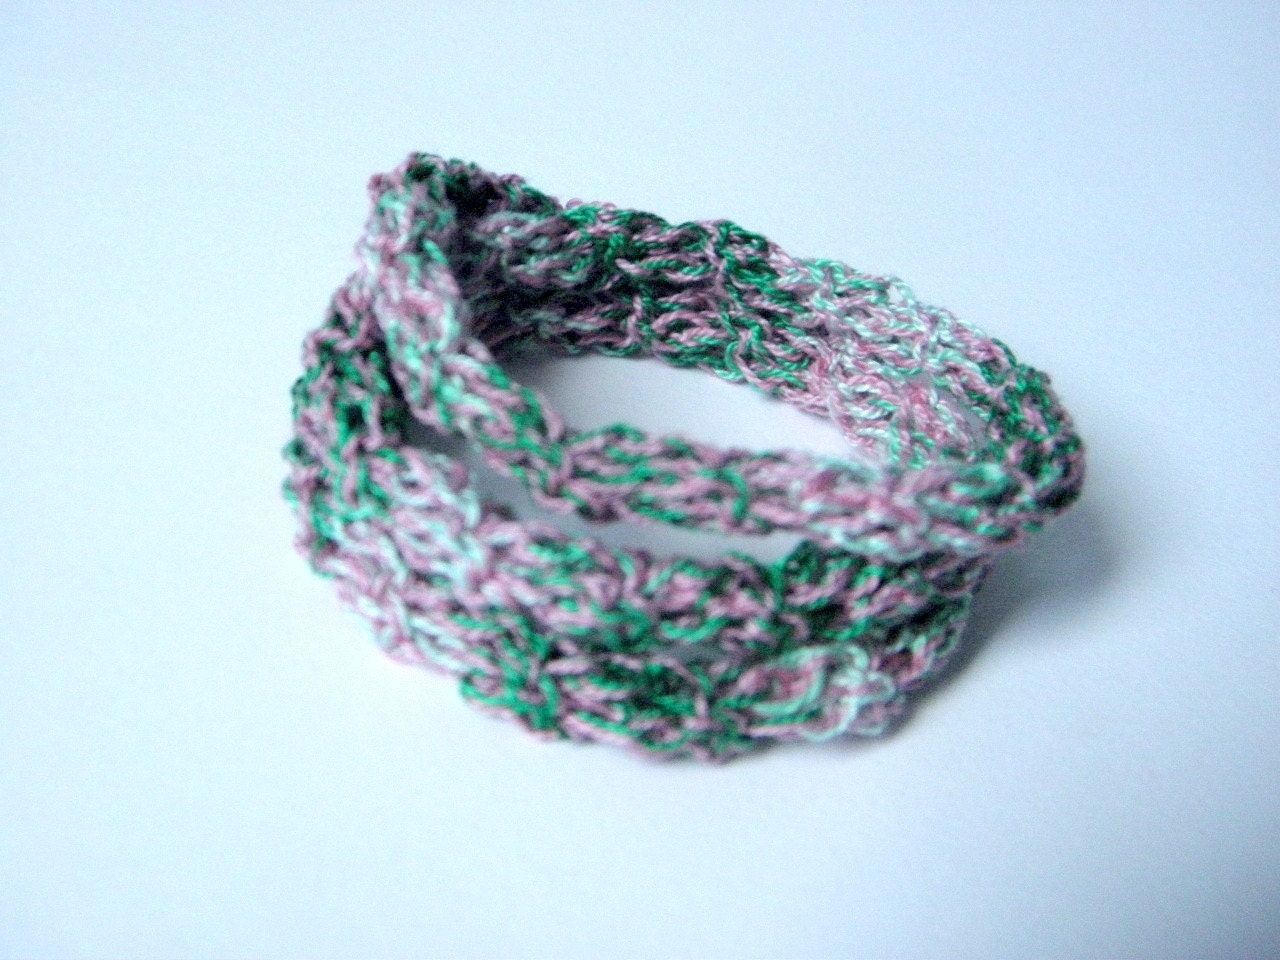 Crochet bracelet made of cotton pink and green gradient color